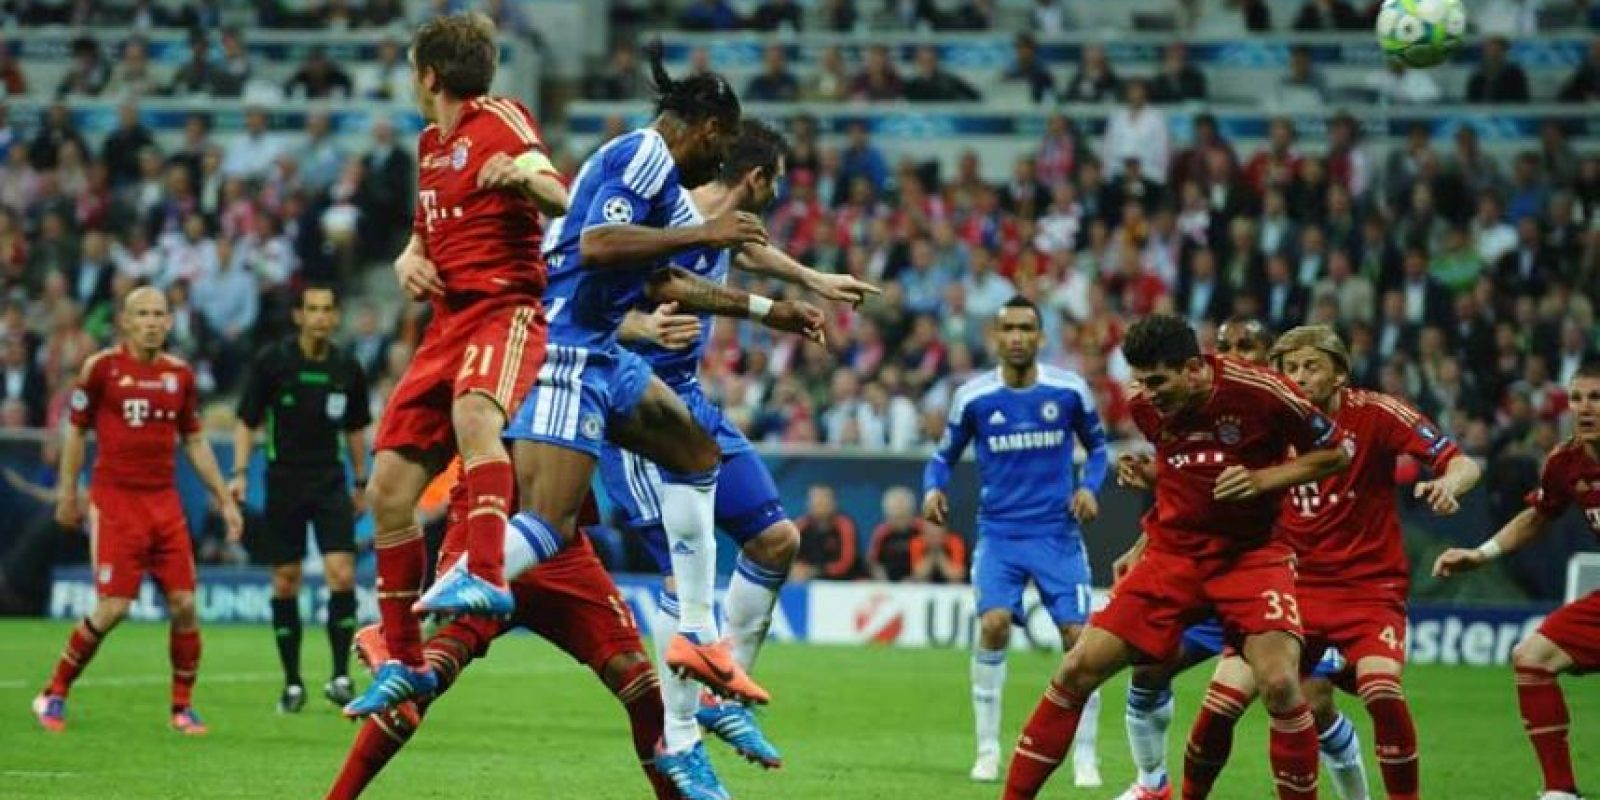 2012: Bayern Munich vs. Chelsea Foto: Getty Images